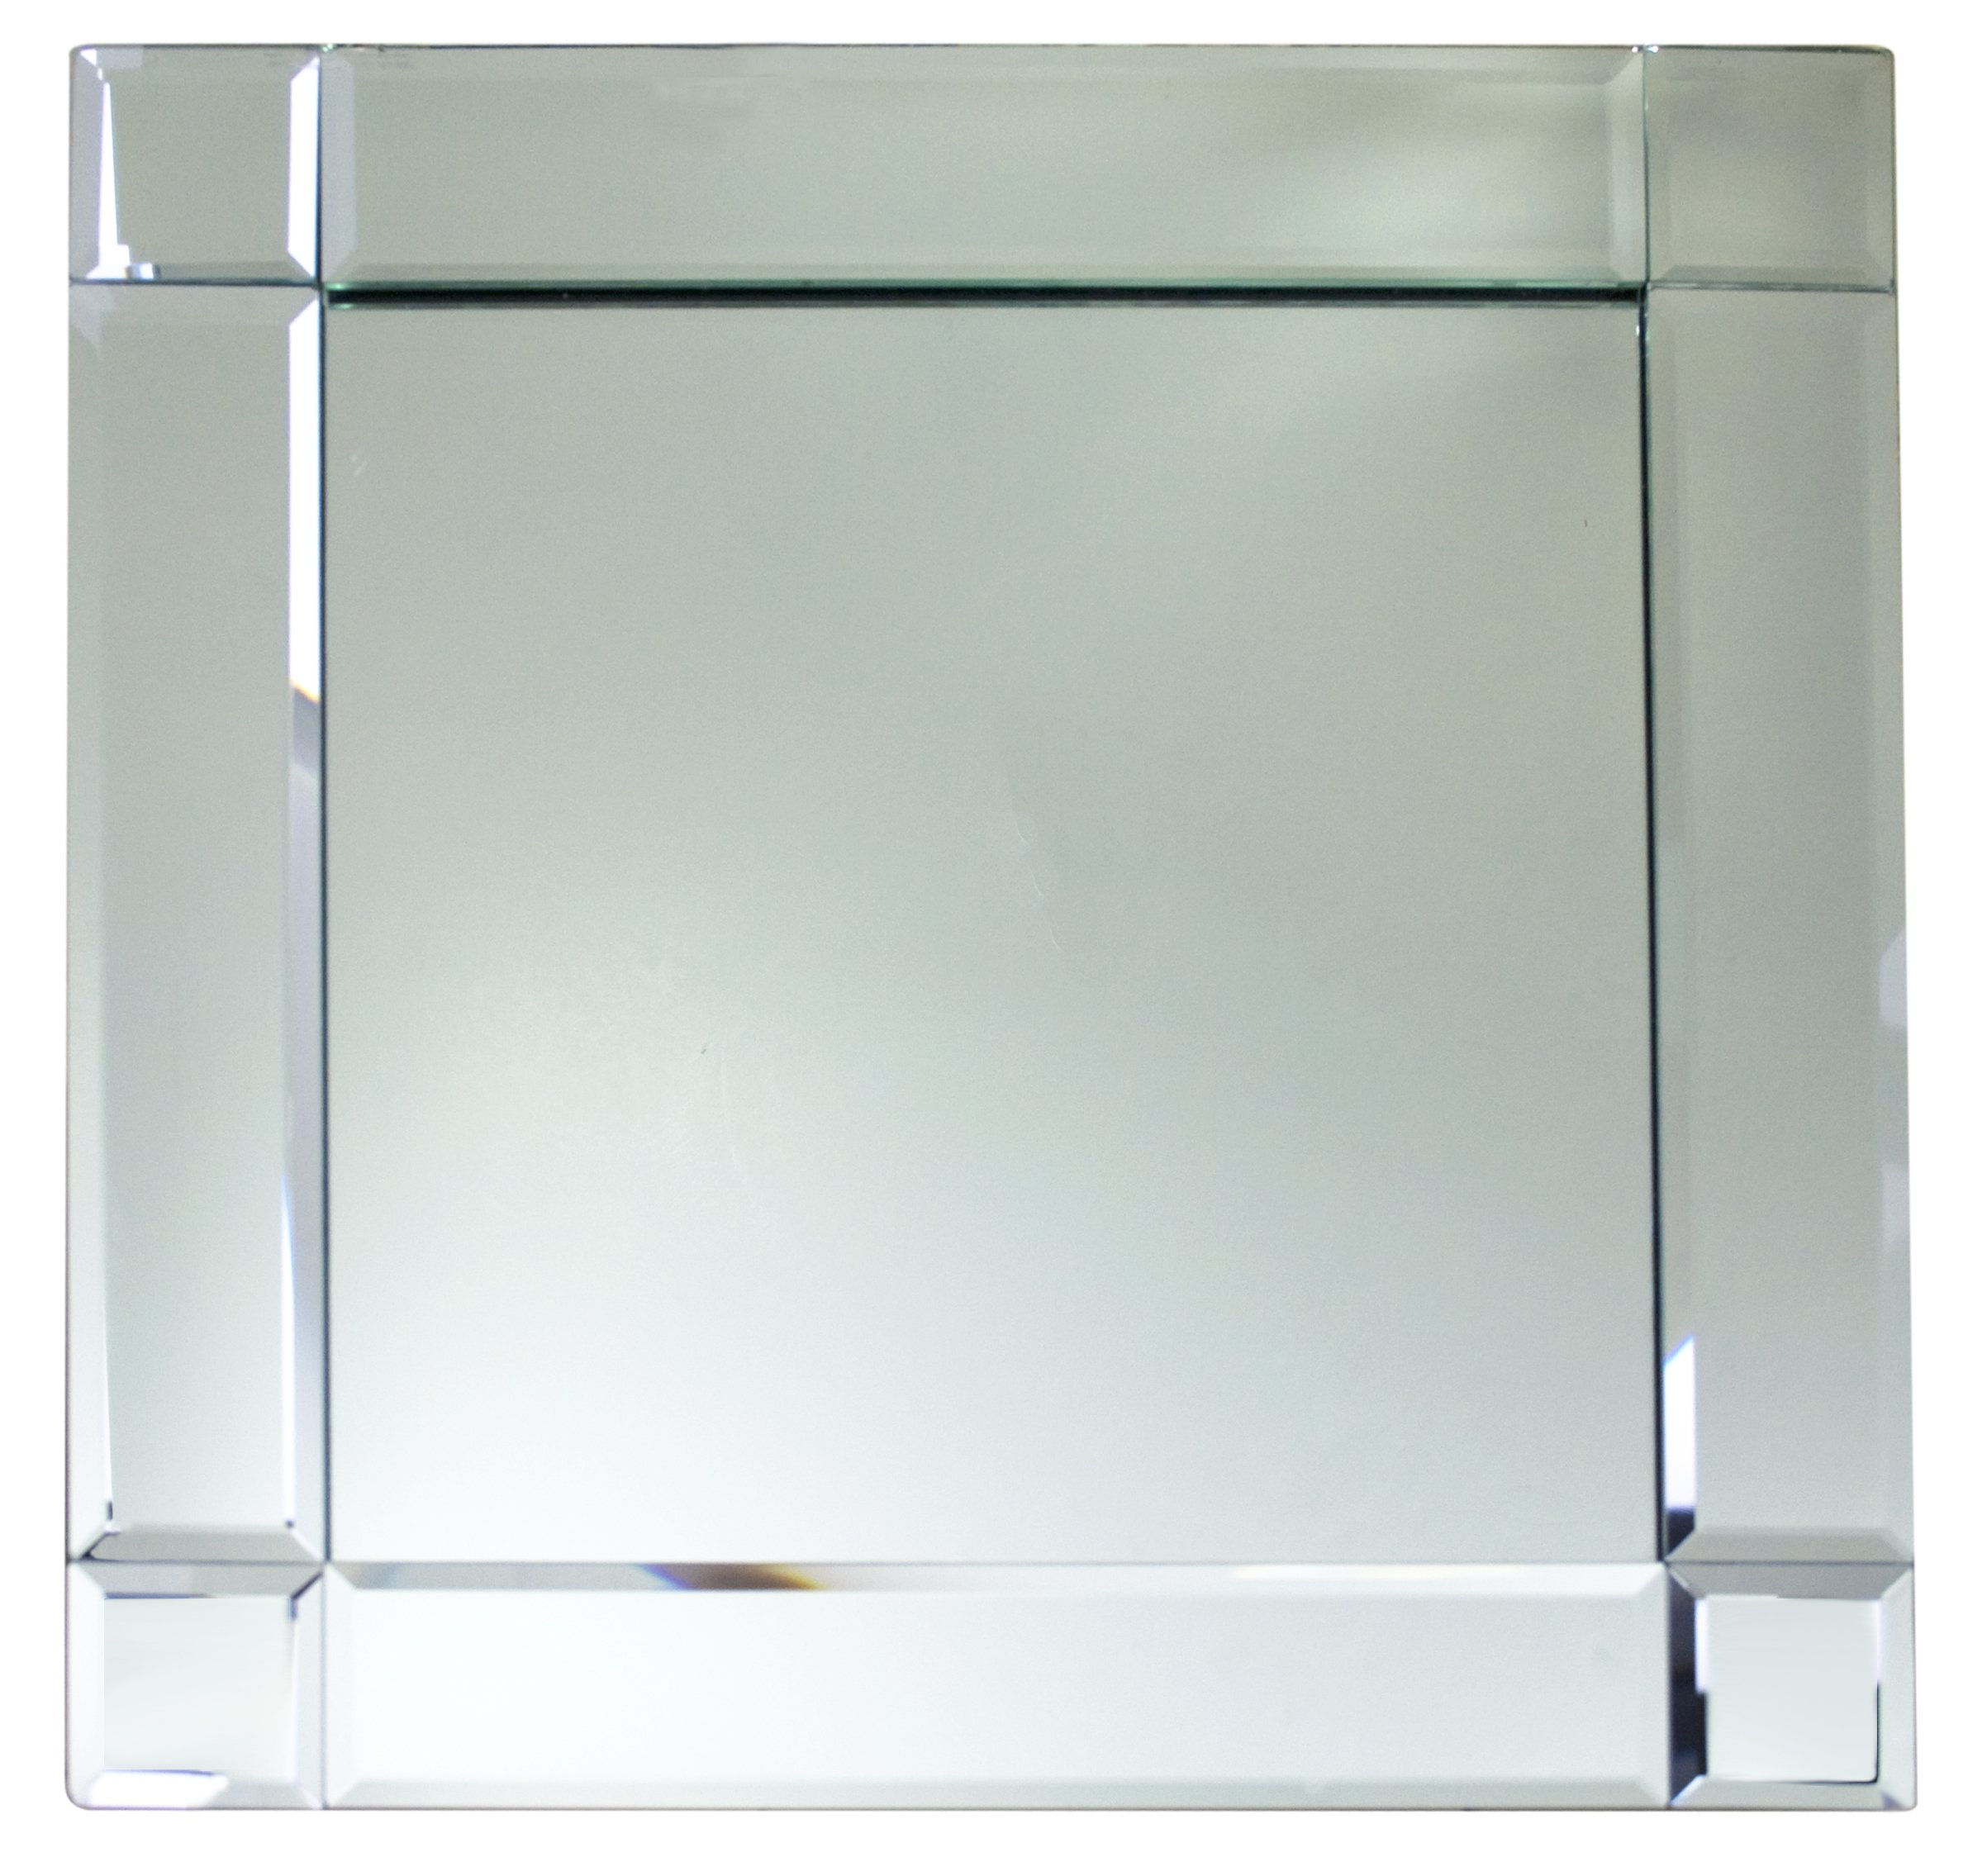 Framed Square Mirror Charger Plate